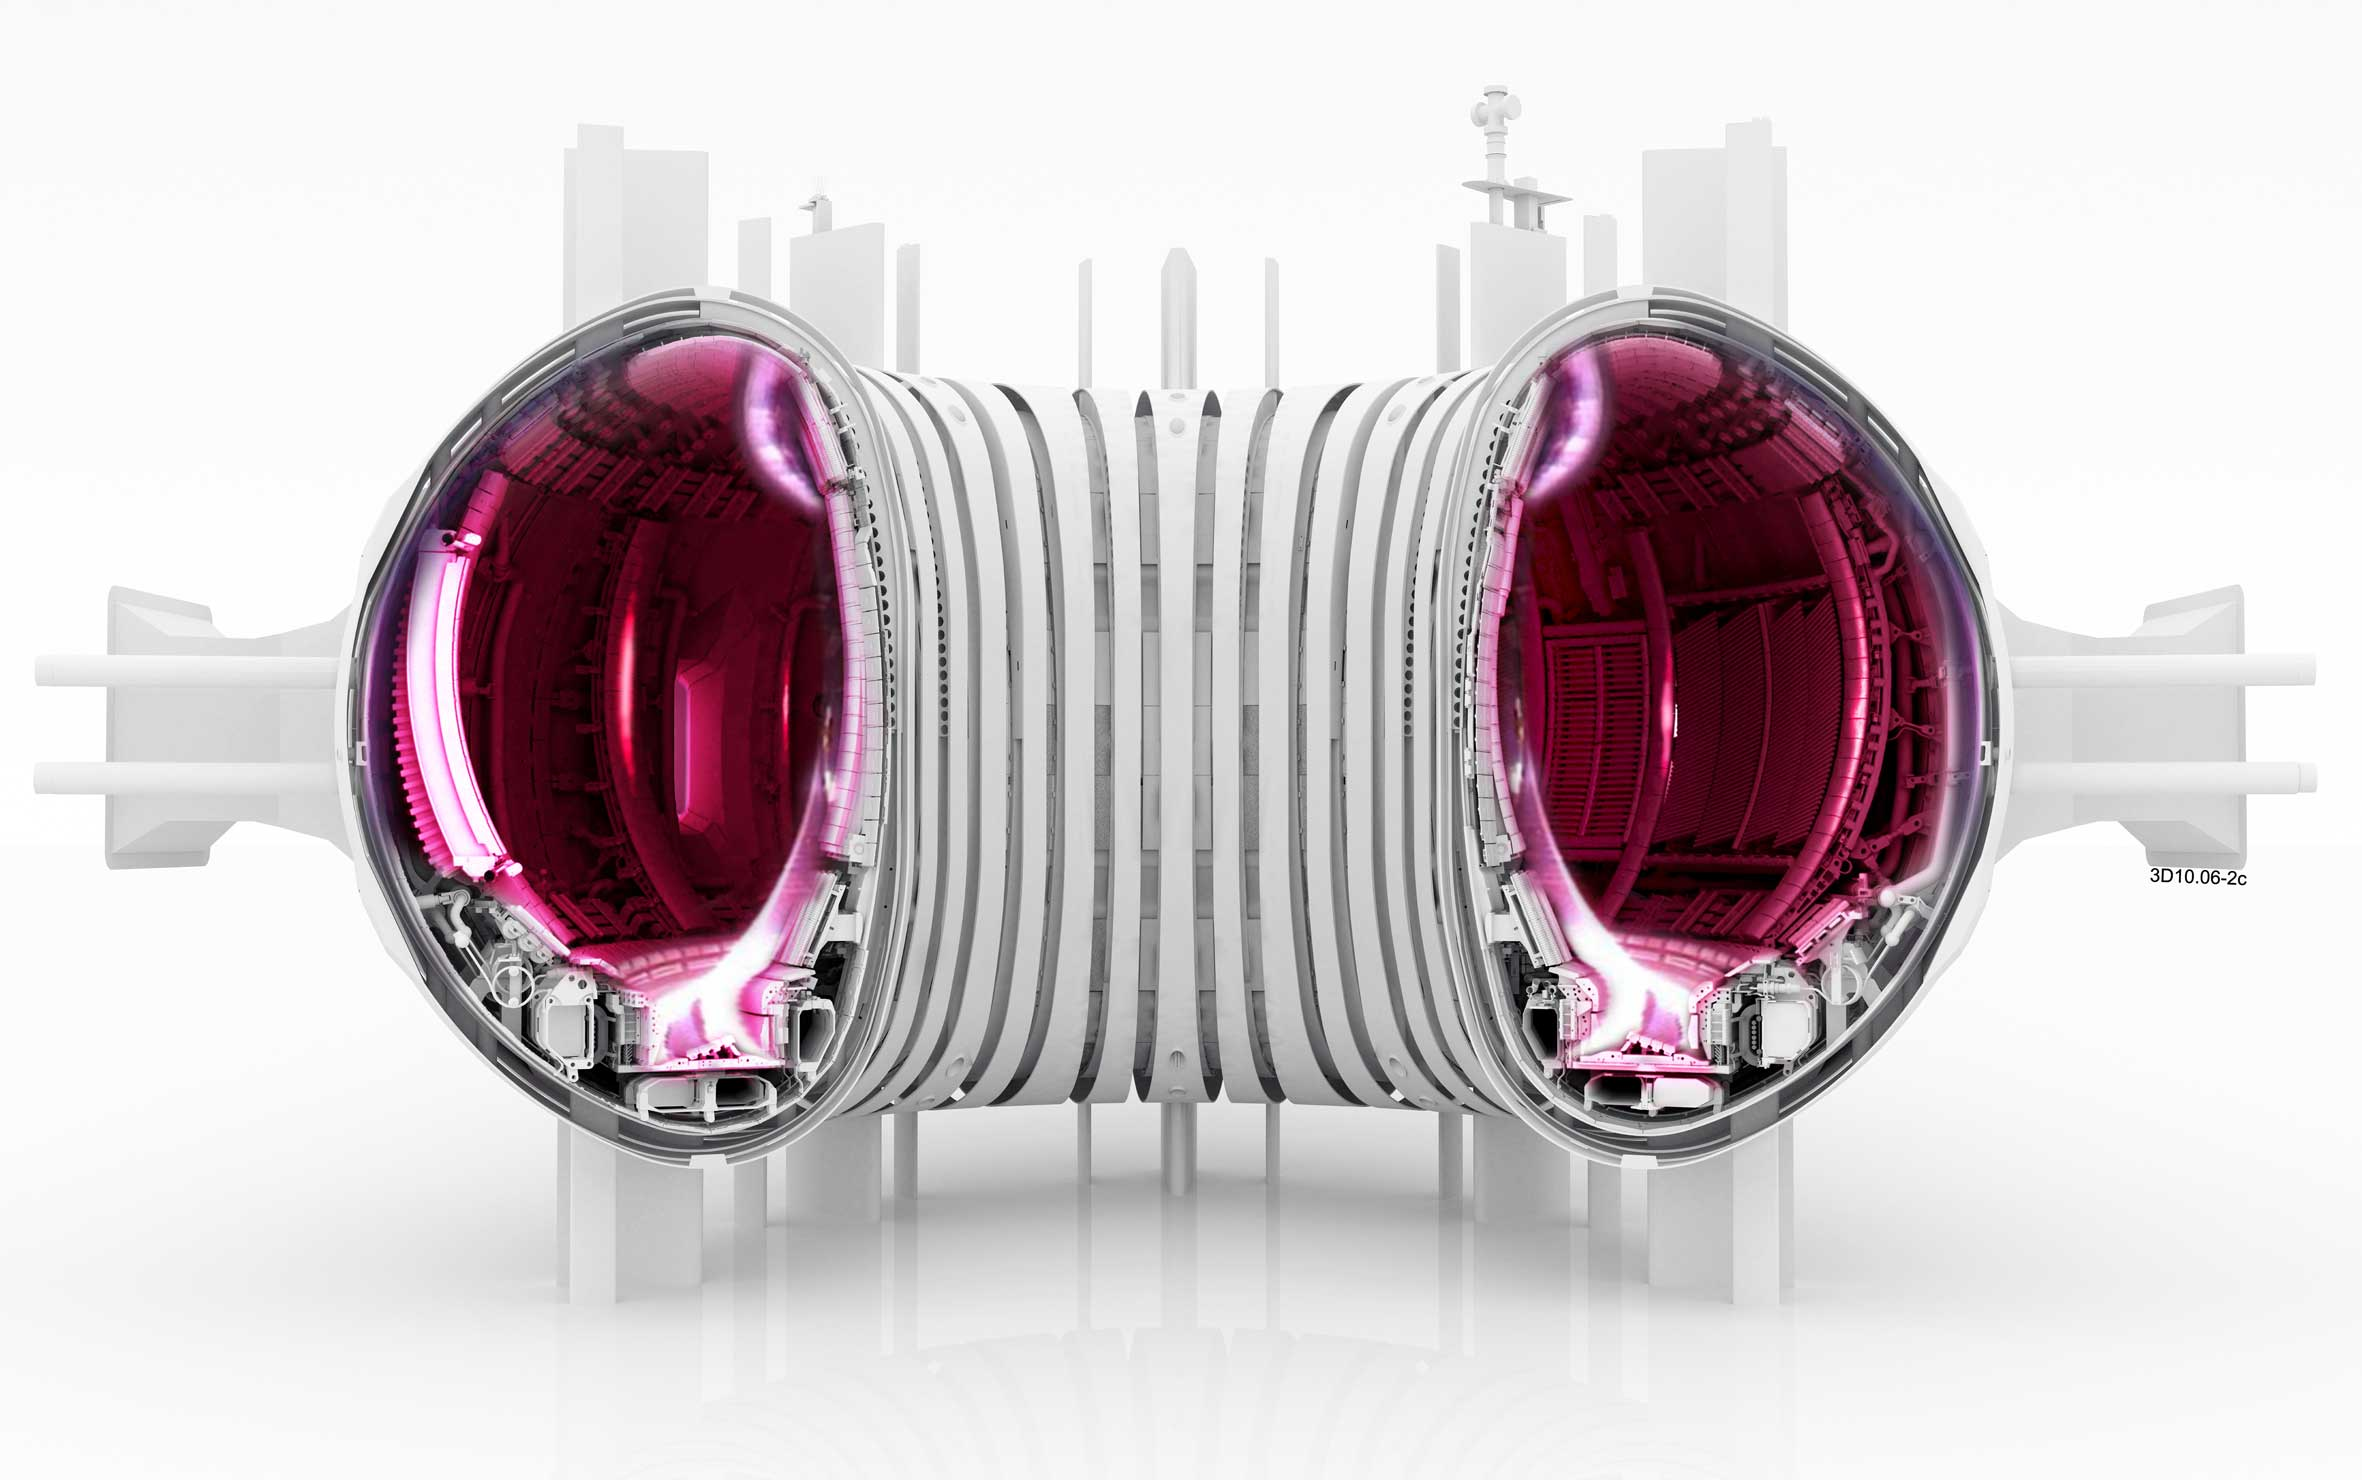 Illustration of a tokamak